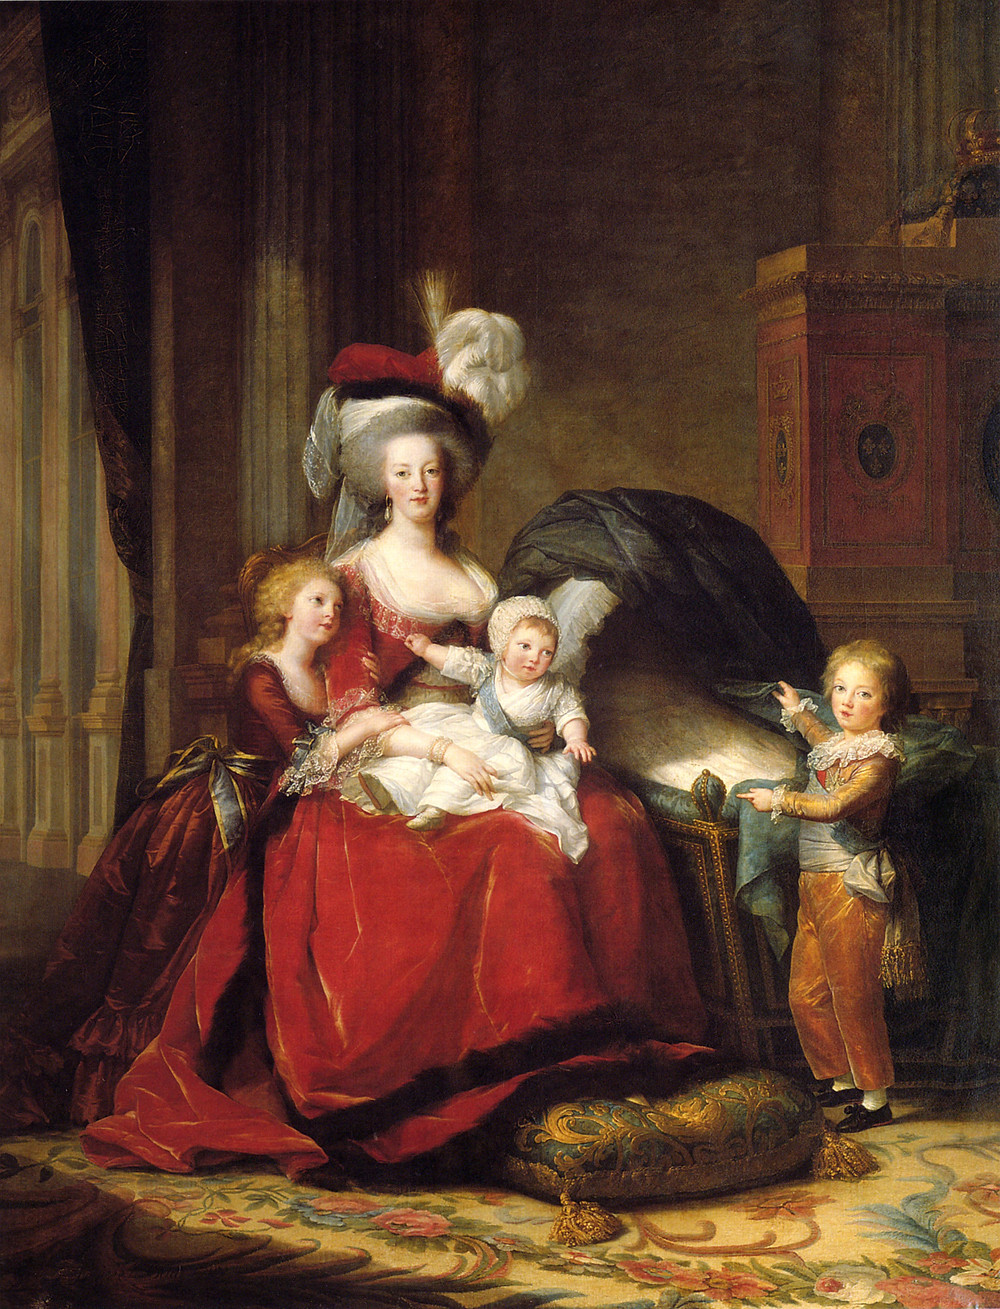 Marie Antoinette and her Children, 1787 -- Marie Antoinette had this painting commissioned to counteract the bad publicity from the pamphleteers in the early years. The slander got much worse after 1789.